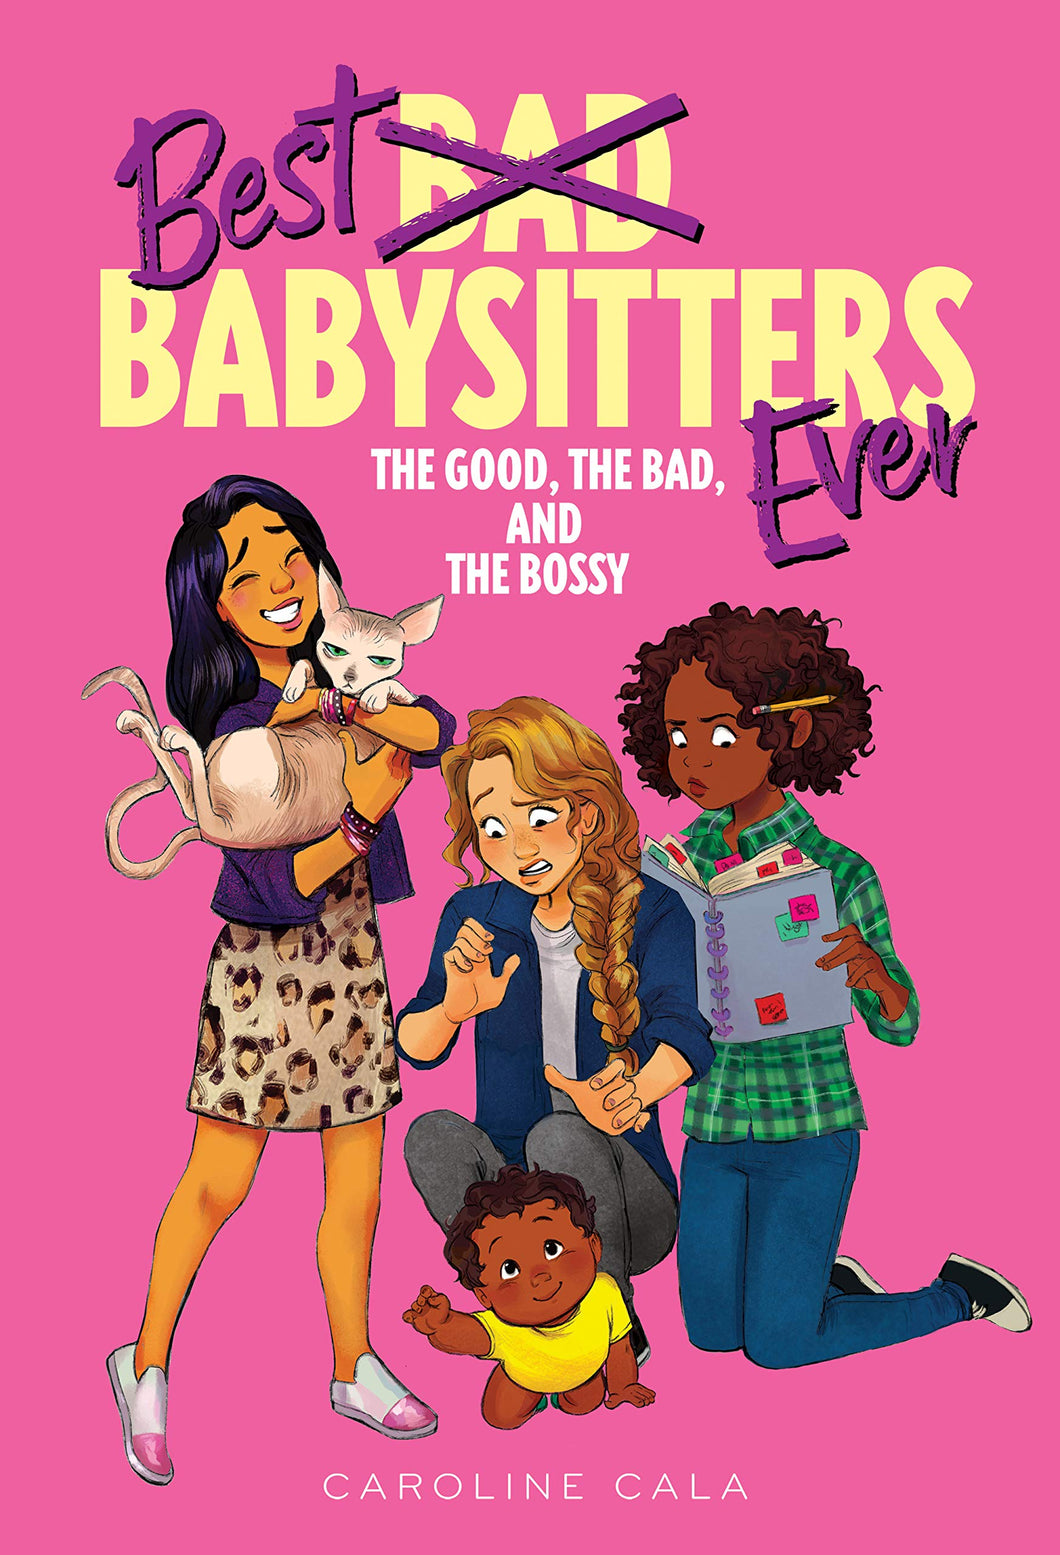 Best Babysitters Ever (The Good, the Bad, and the Bossy)